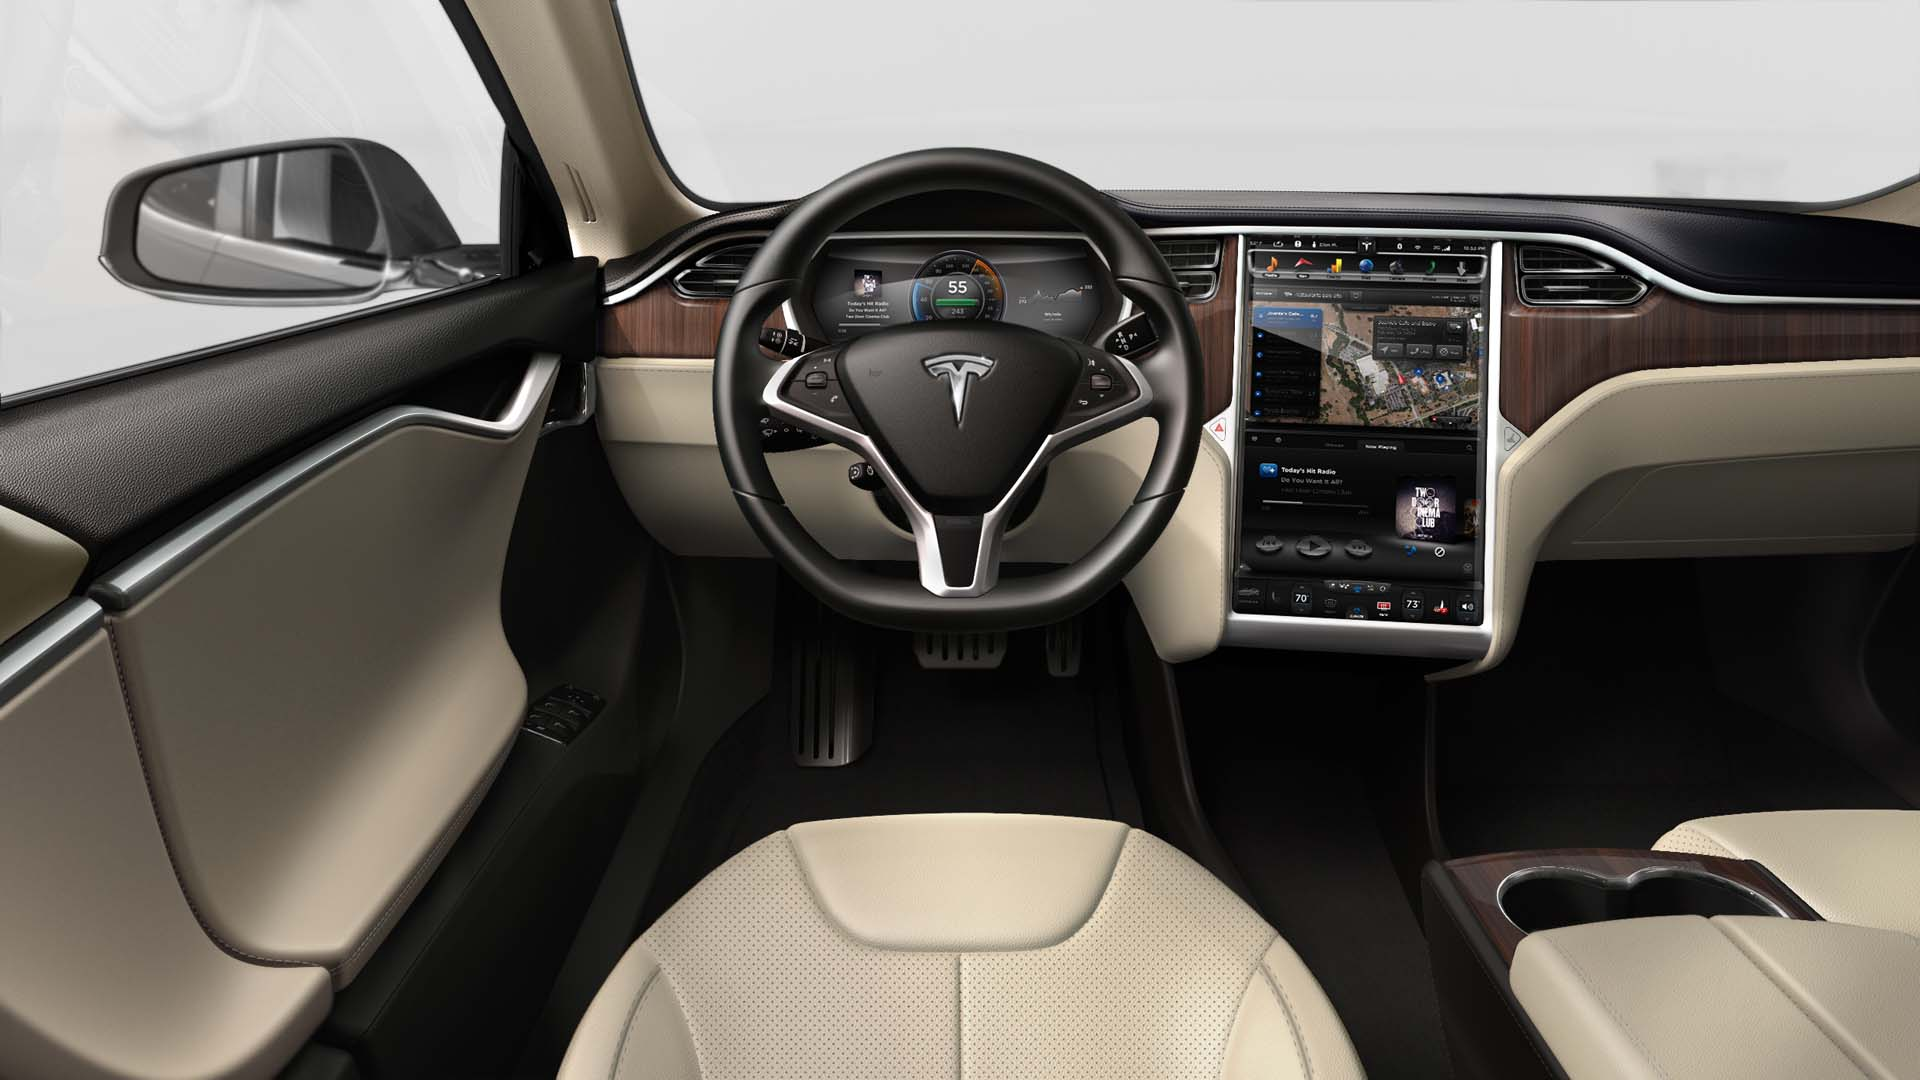 Tesla Model S X To Receive Spartan Model 3 Interior Design